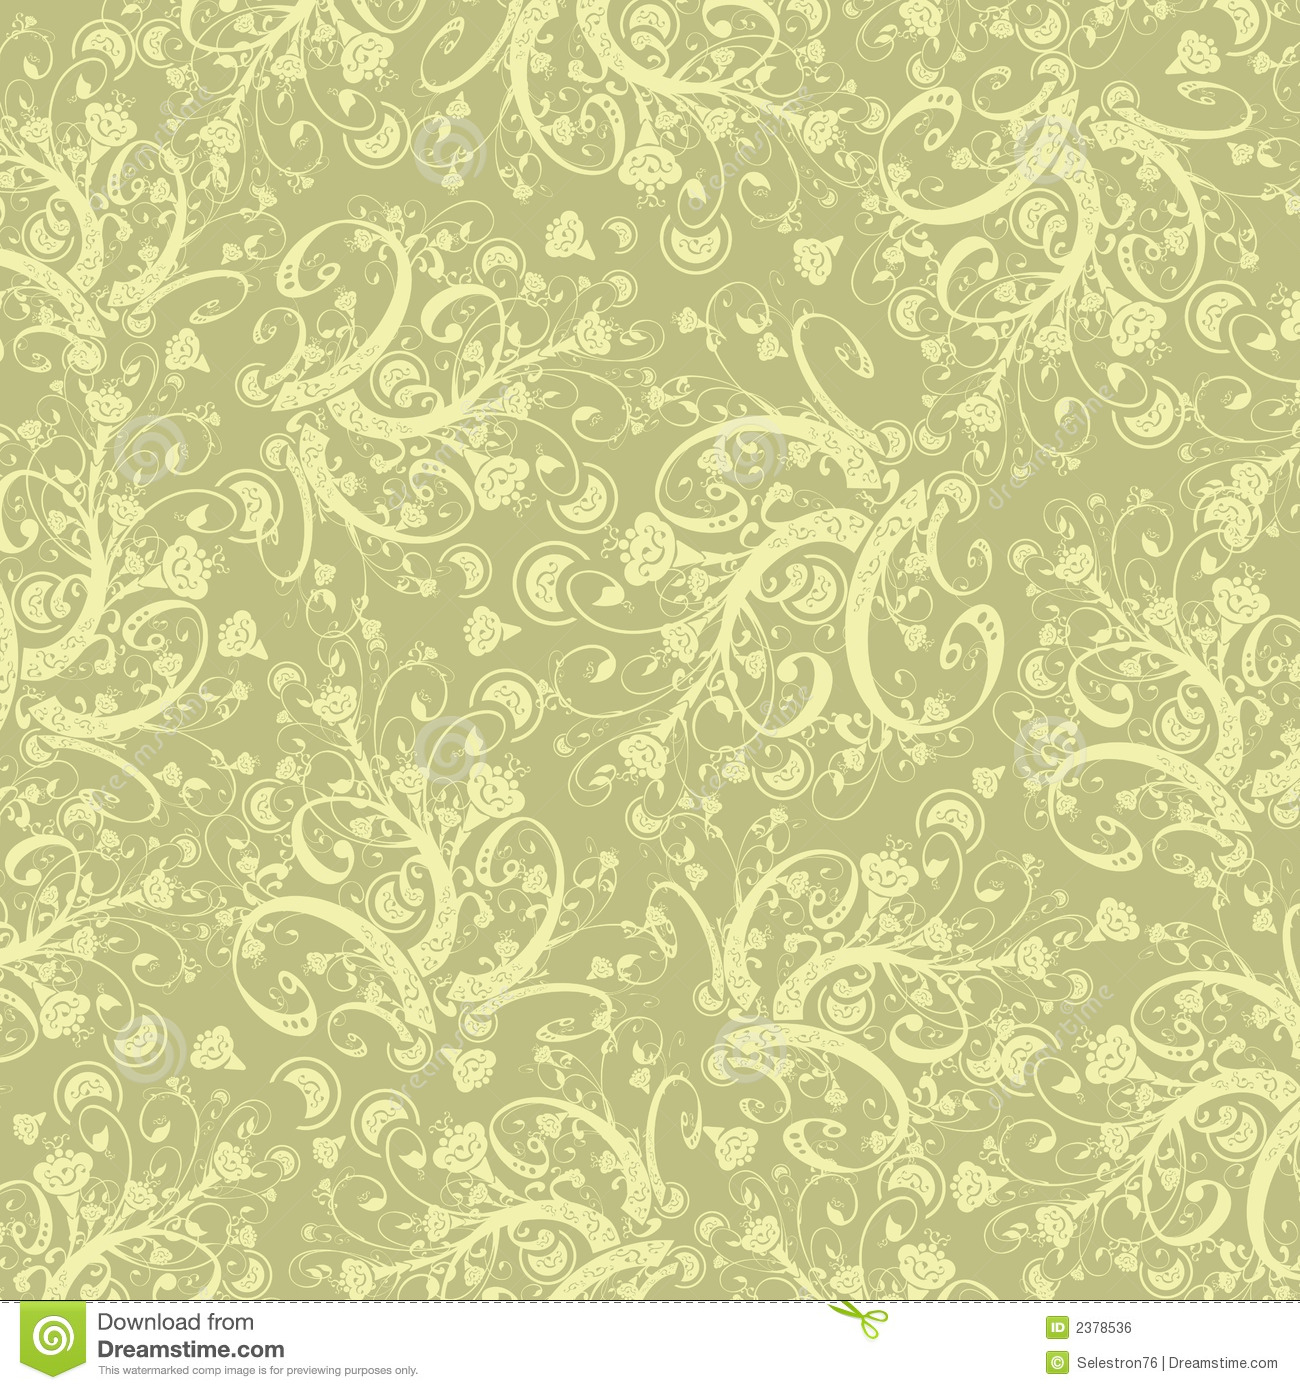 Calligraphy Flowers Wallpaper Royalty Free Stock Image - Image ...